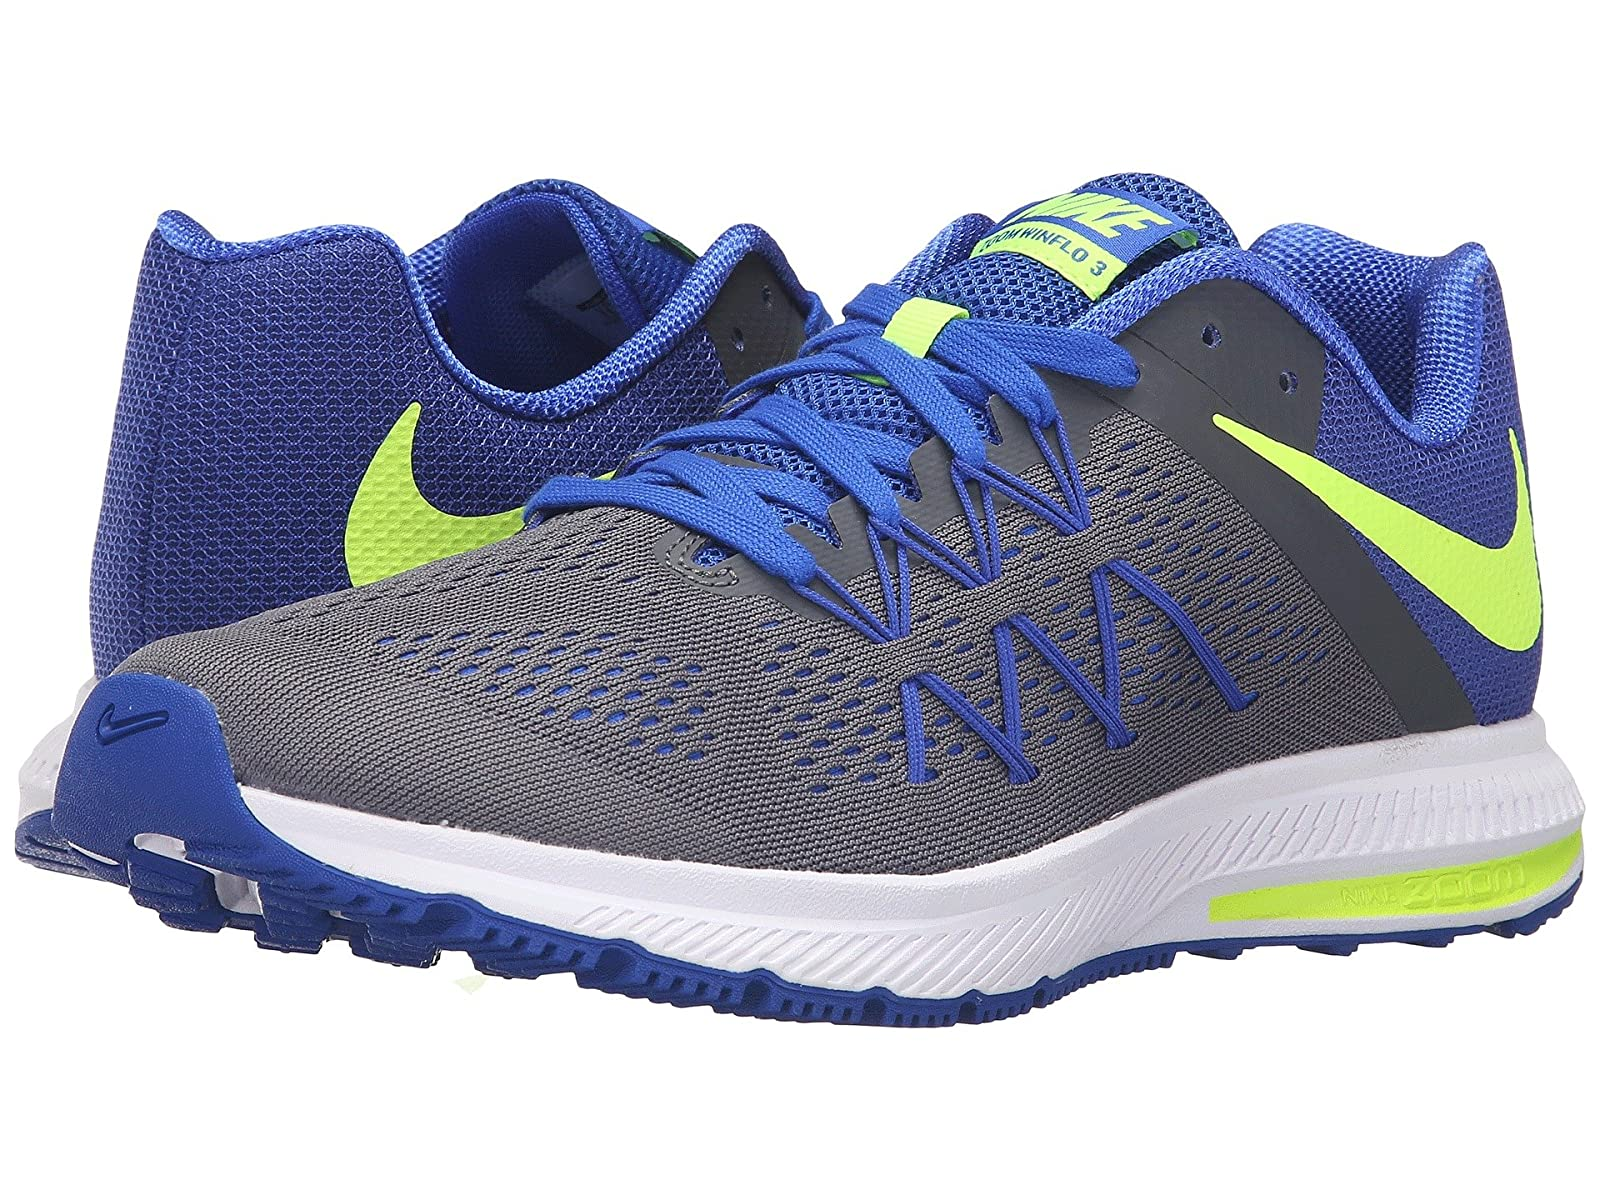 Nike Zoom Winflo 3Cheap and distinctive eye-catching shoes